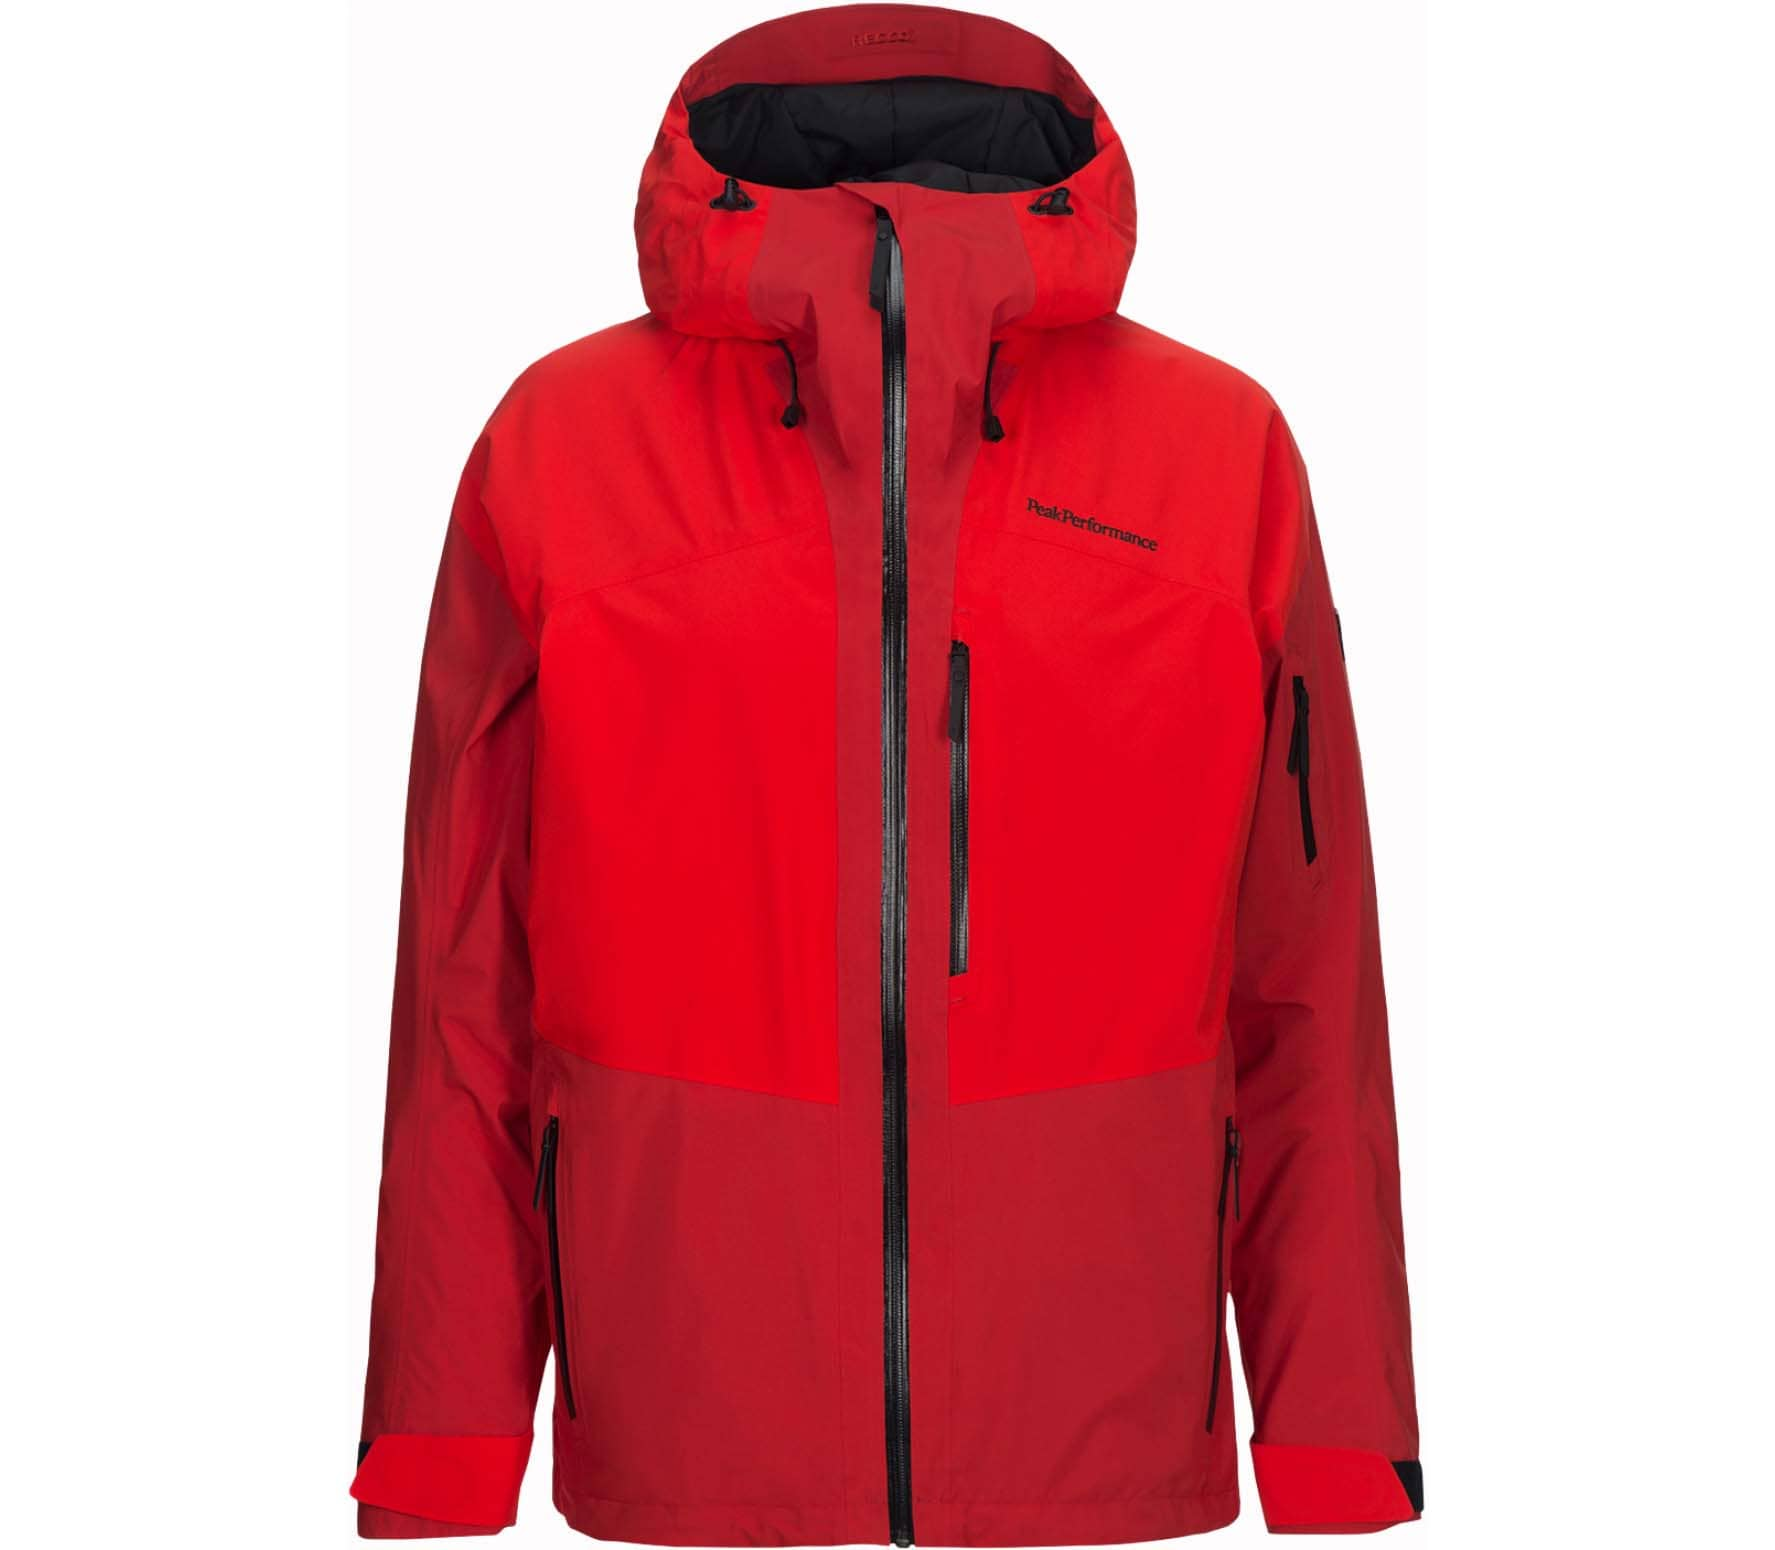 Peak Performance - Gravity men's 2-layer ski jacket (red)